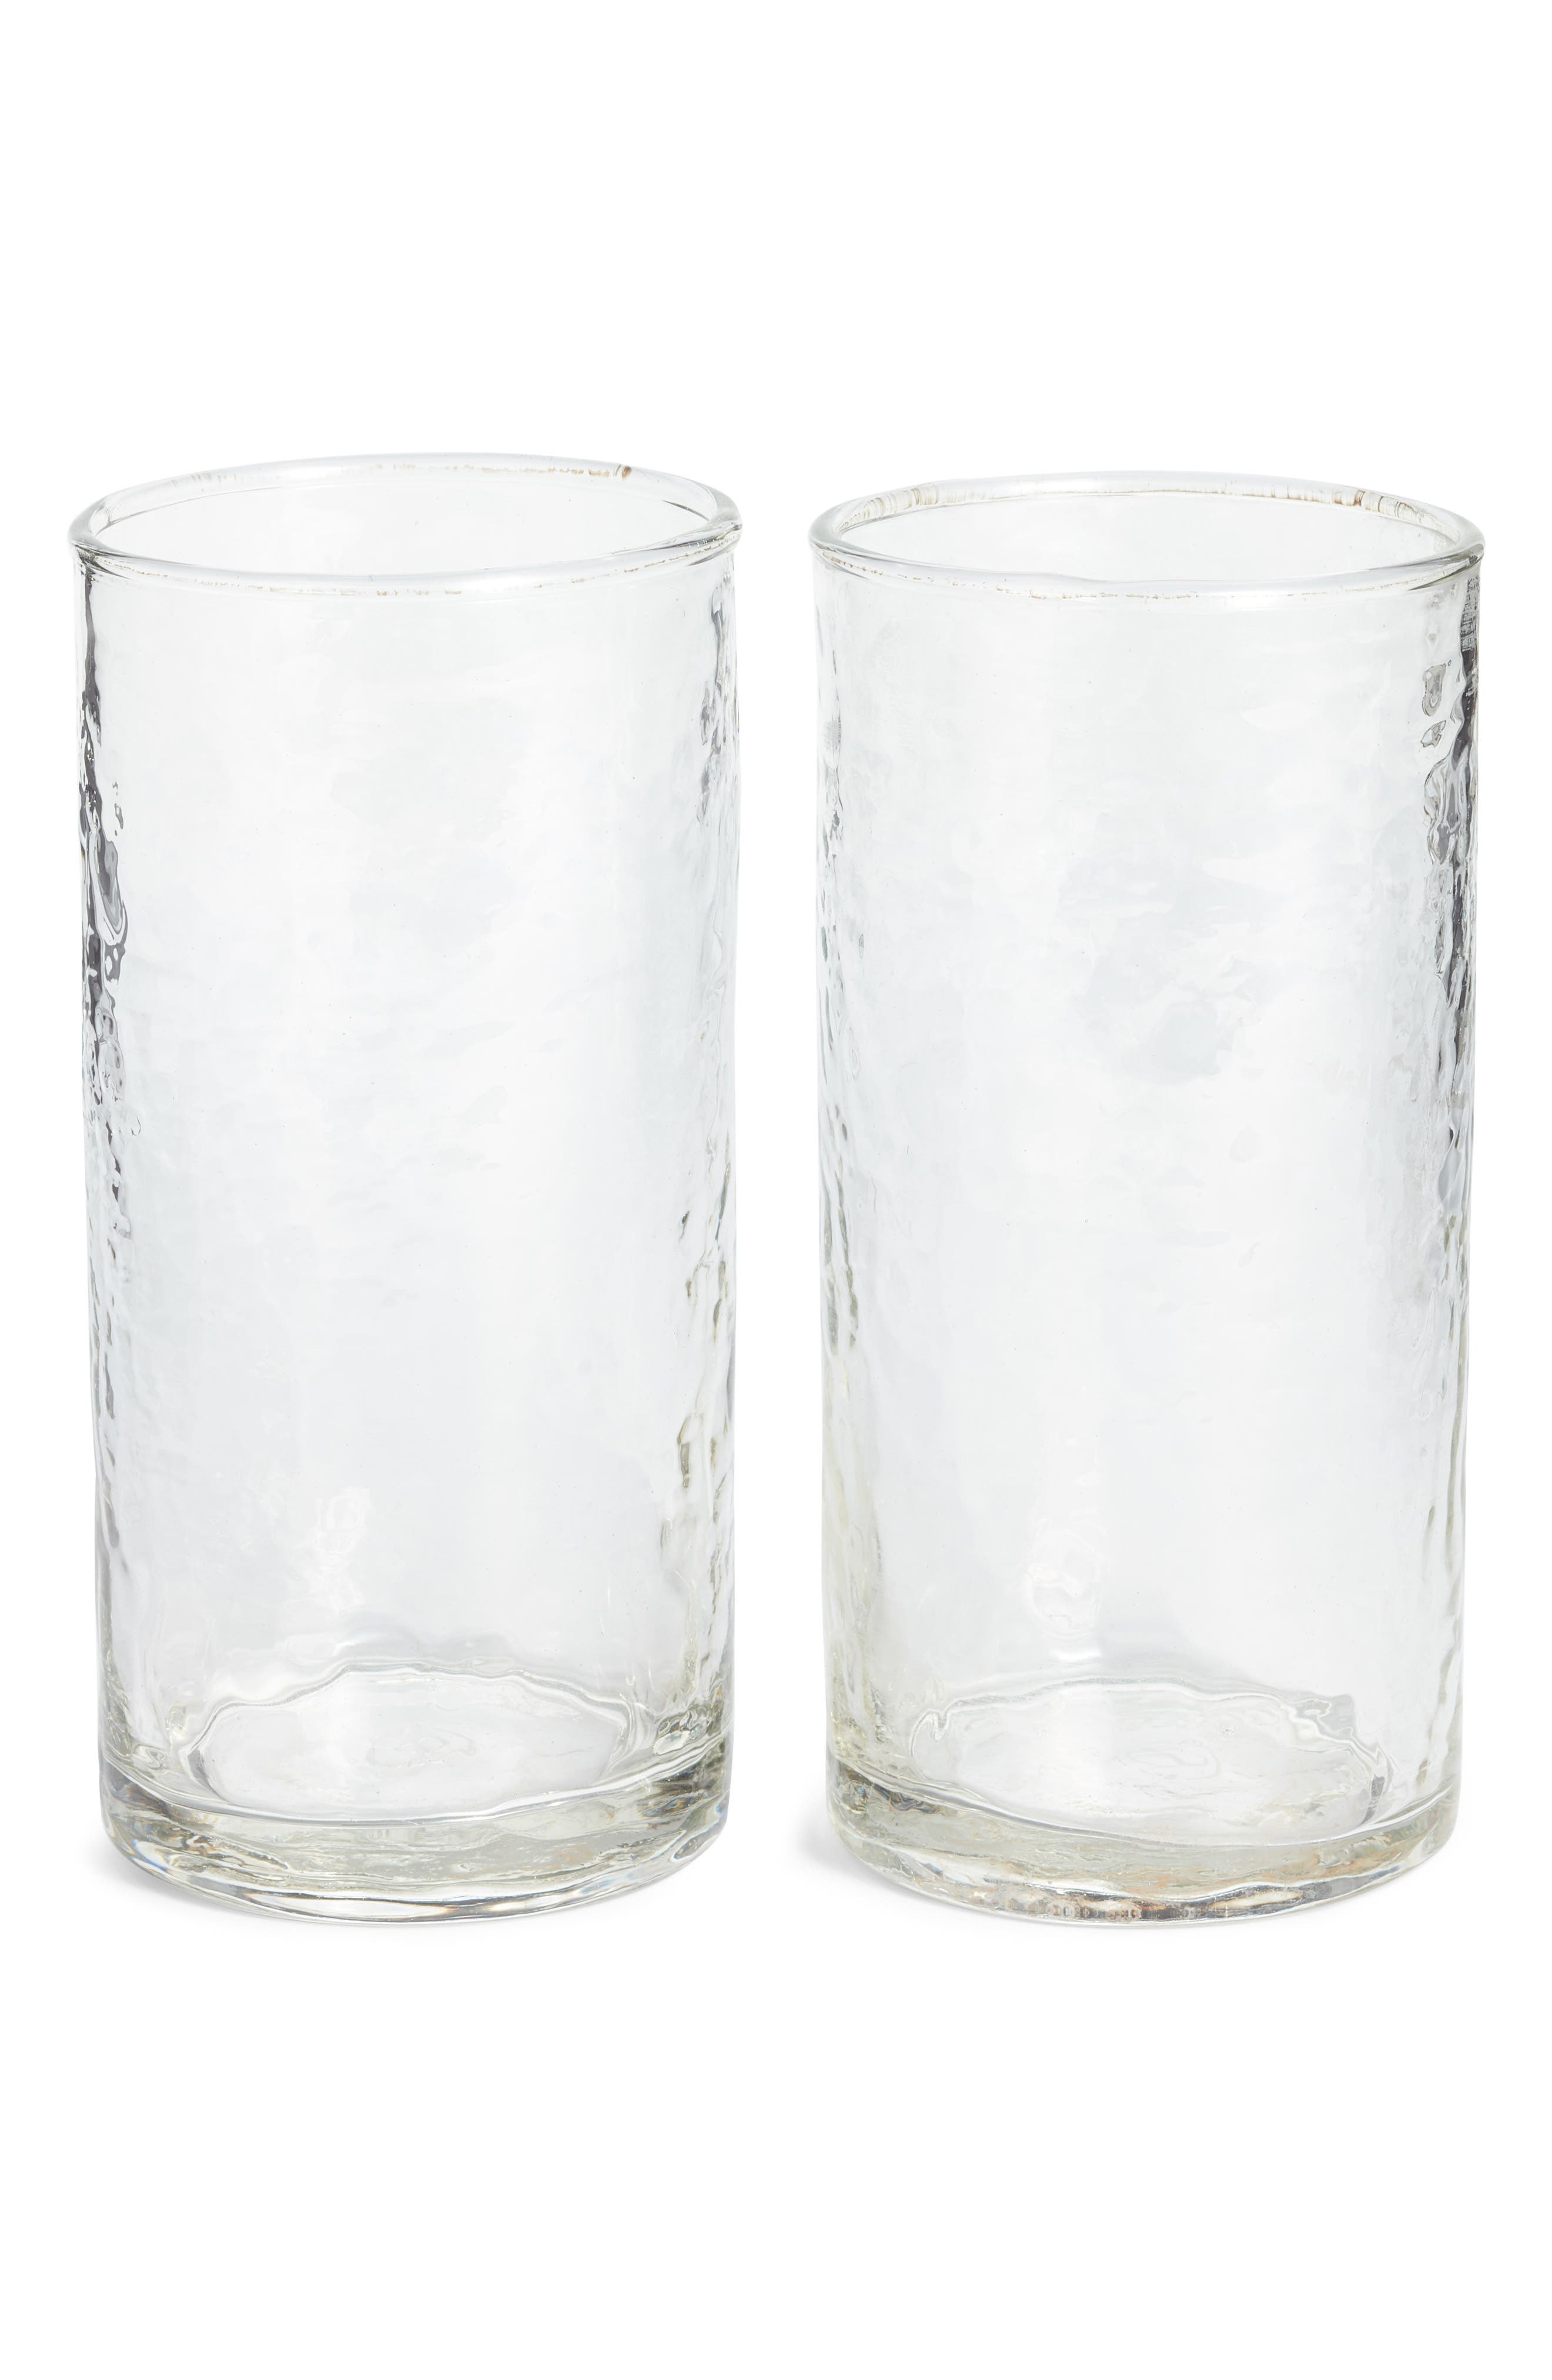 Set of Two Hammered Tall Glasses,                             Main thumbnail 1, color,                             960